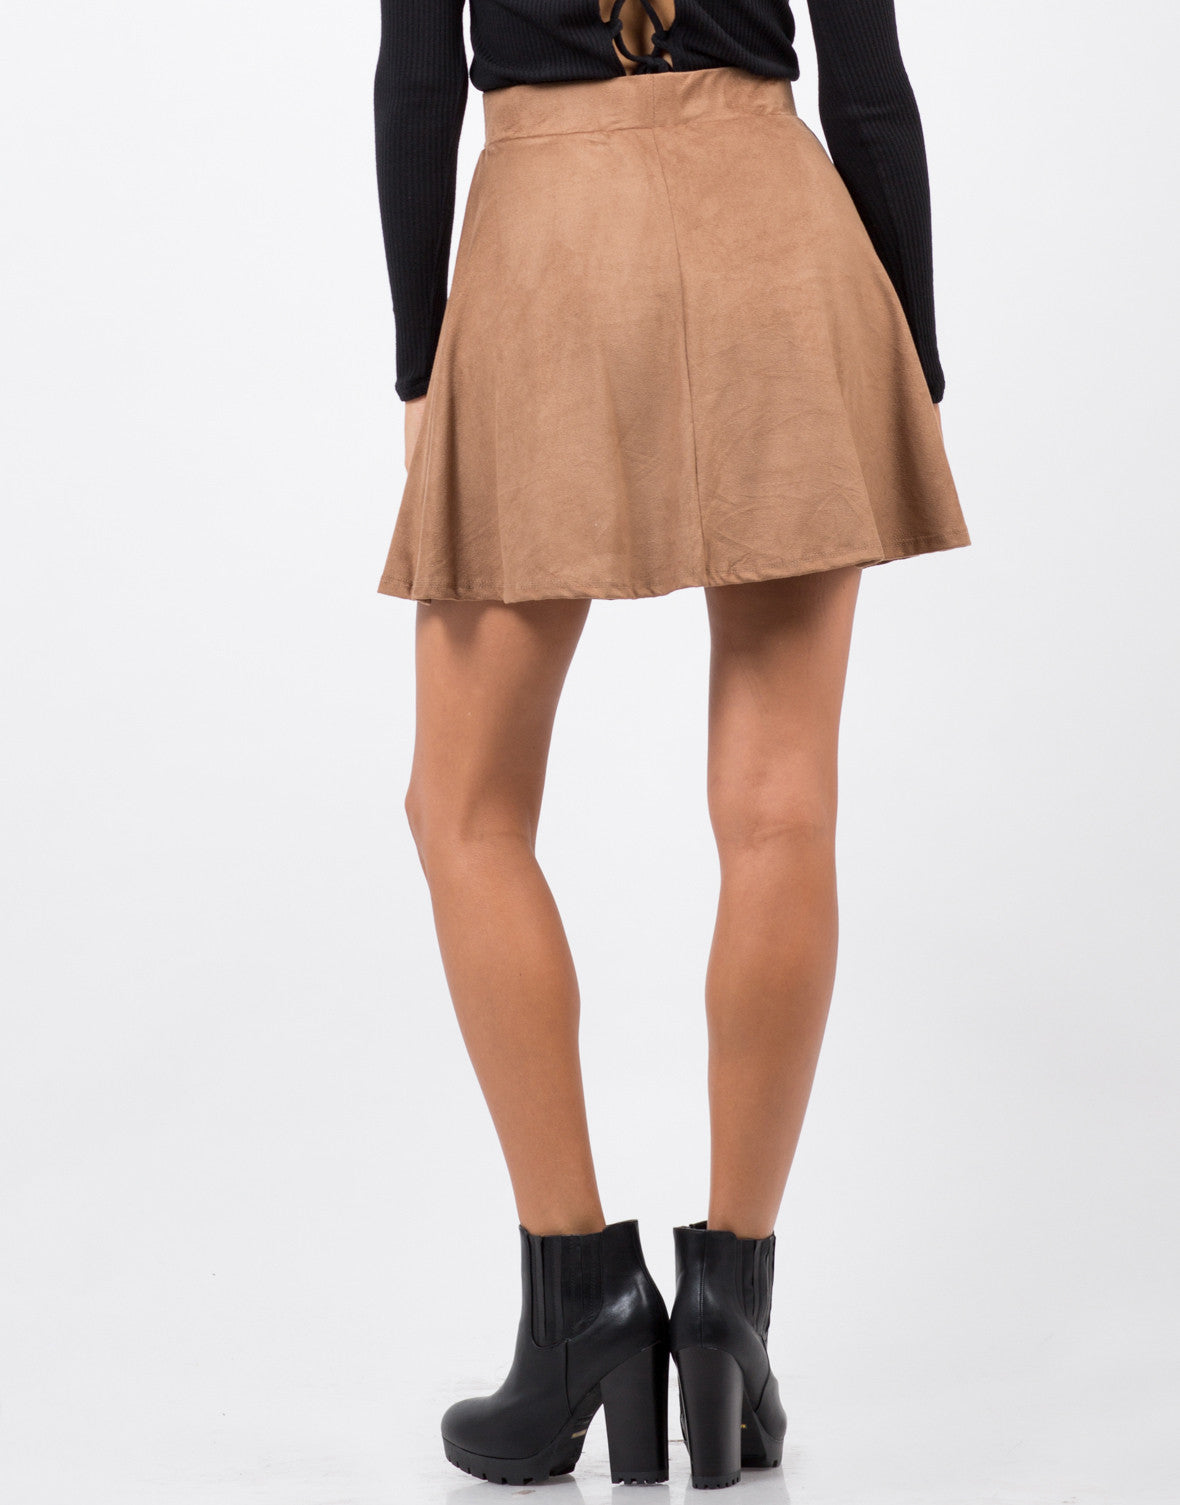 Back View of Suede Skater Skirt